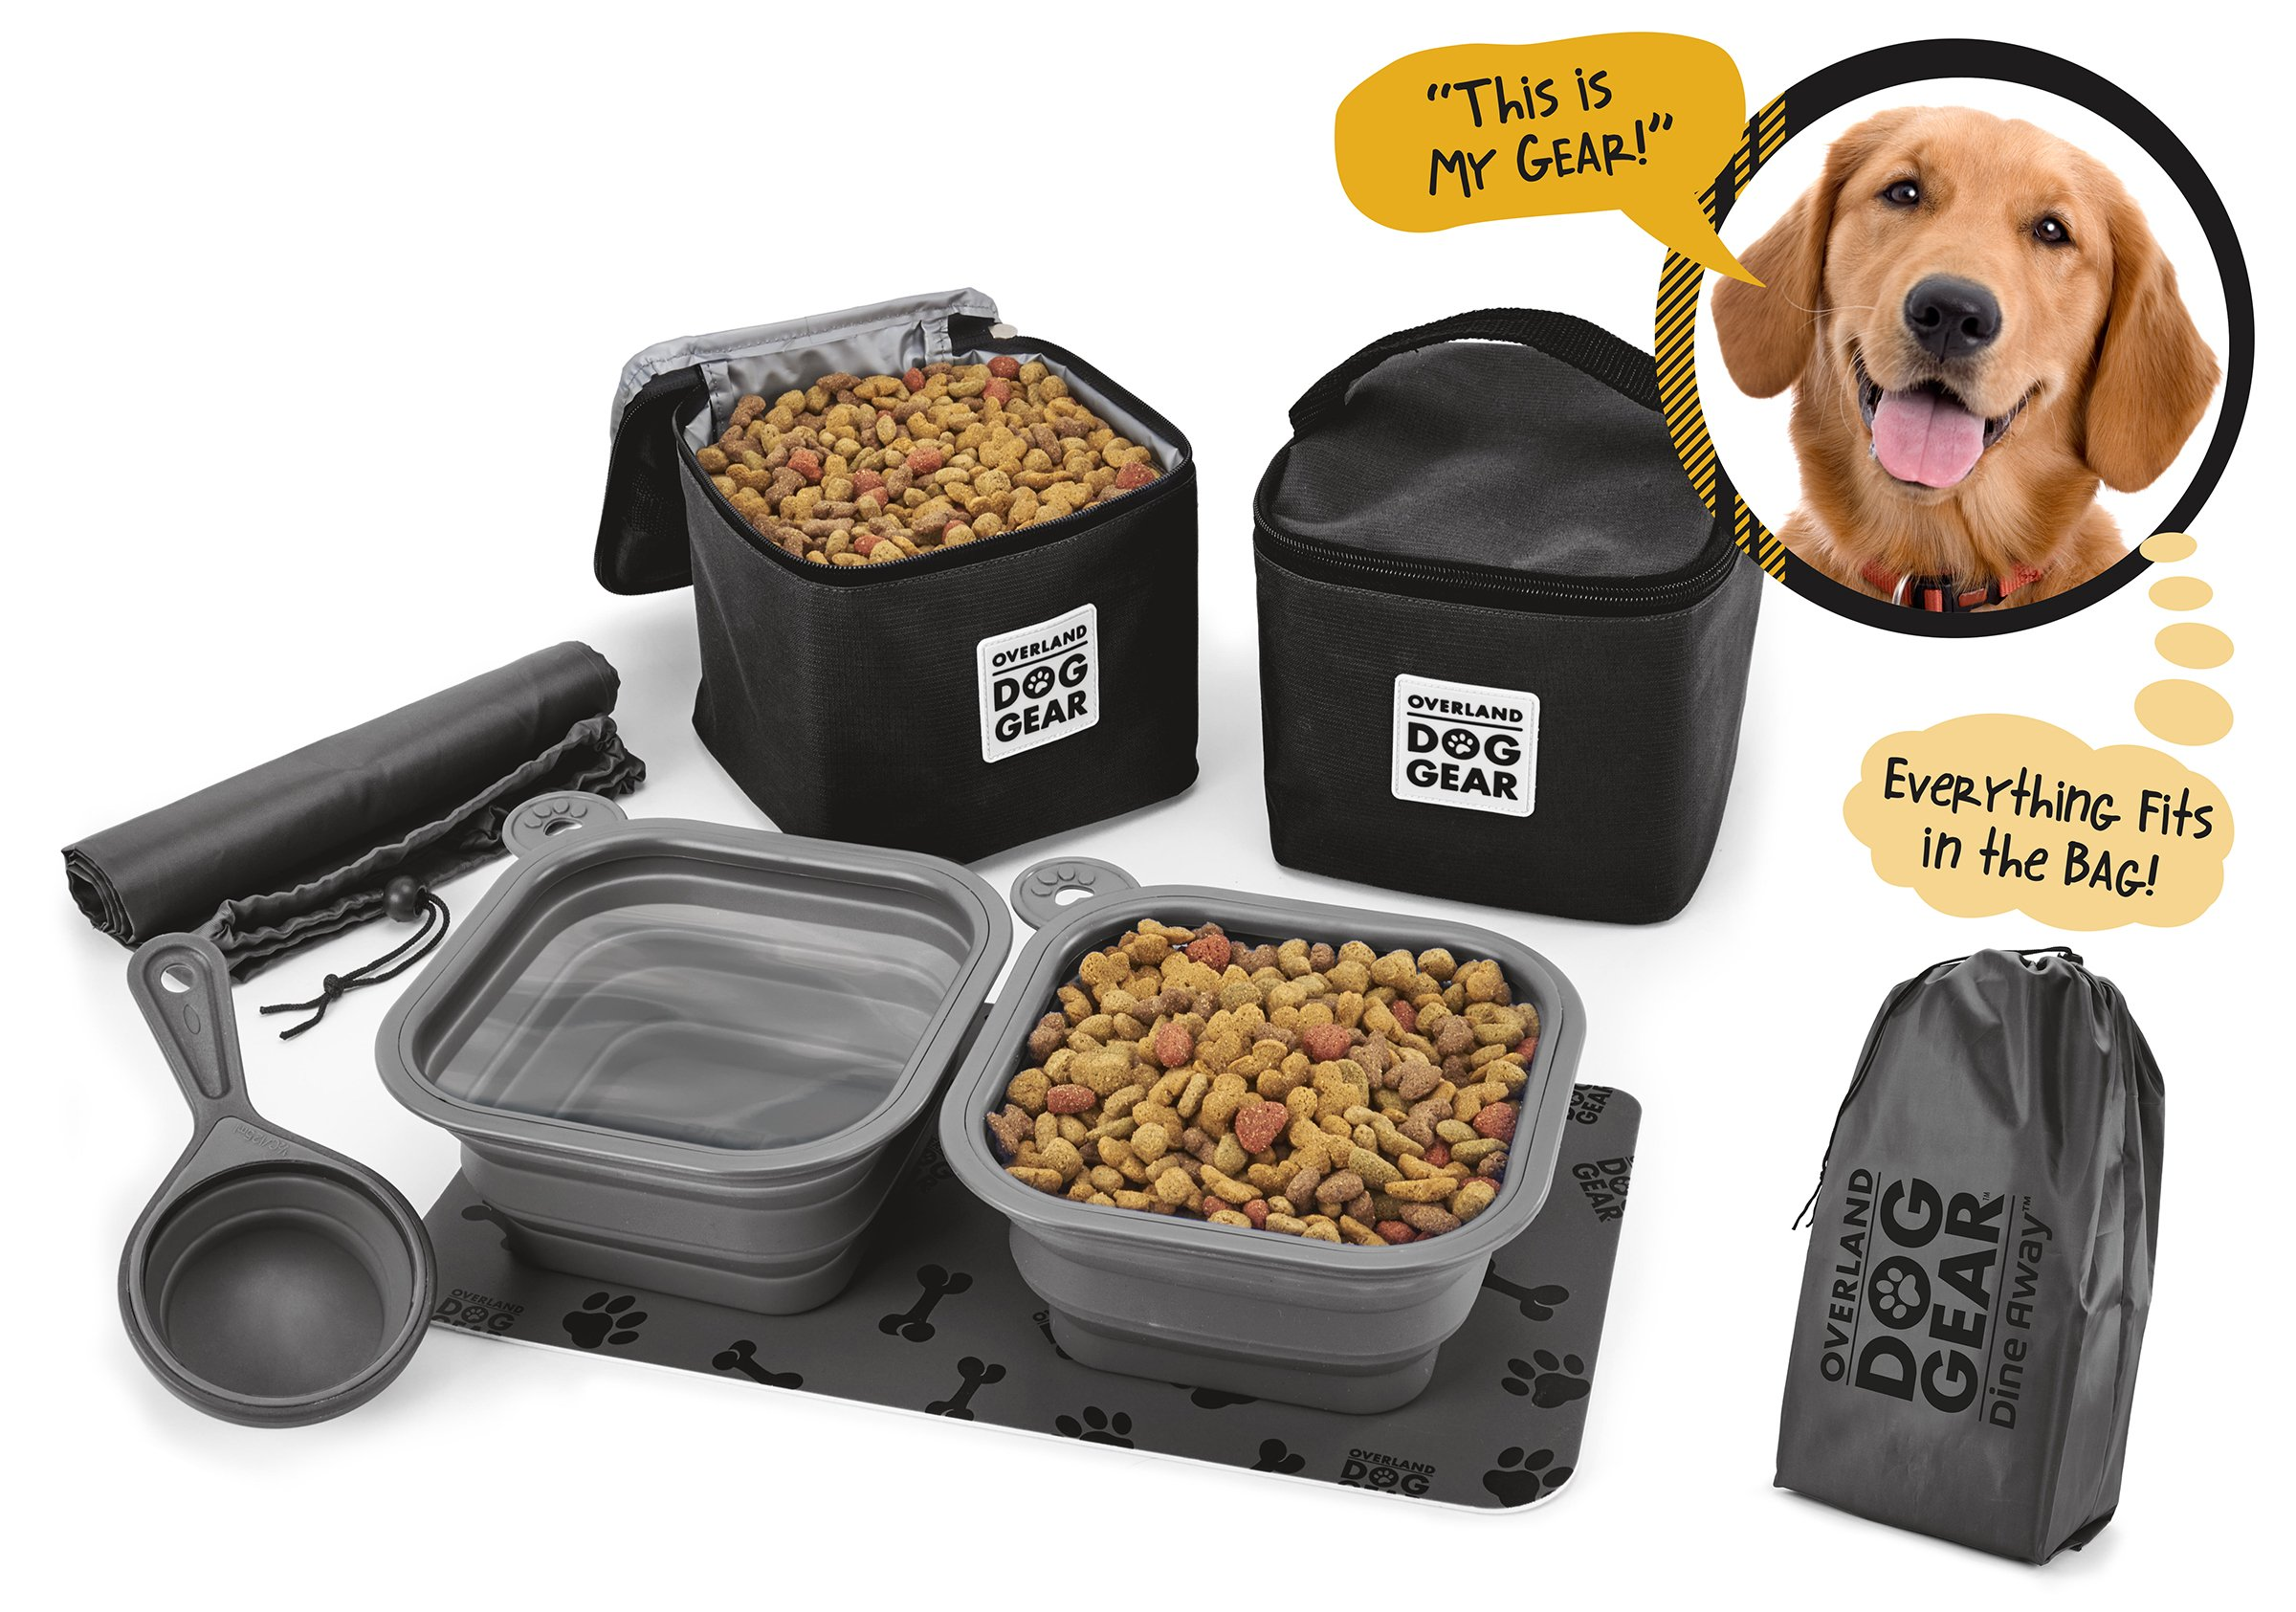 Dog Travel Food Set For Medium + Large Dogs (Black) - 7 Pieces Including Collapsible Bowls, Carriers, Scooper, Place Mat, Bag by Overland Dog Gear